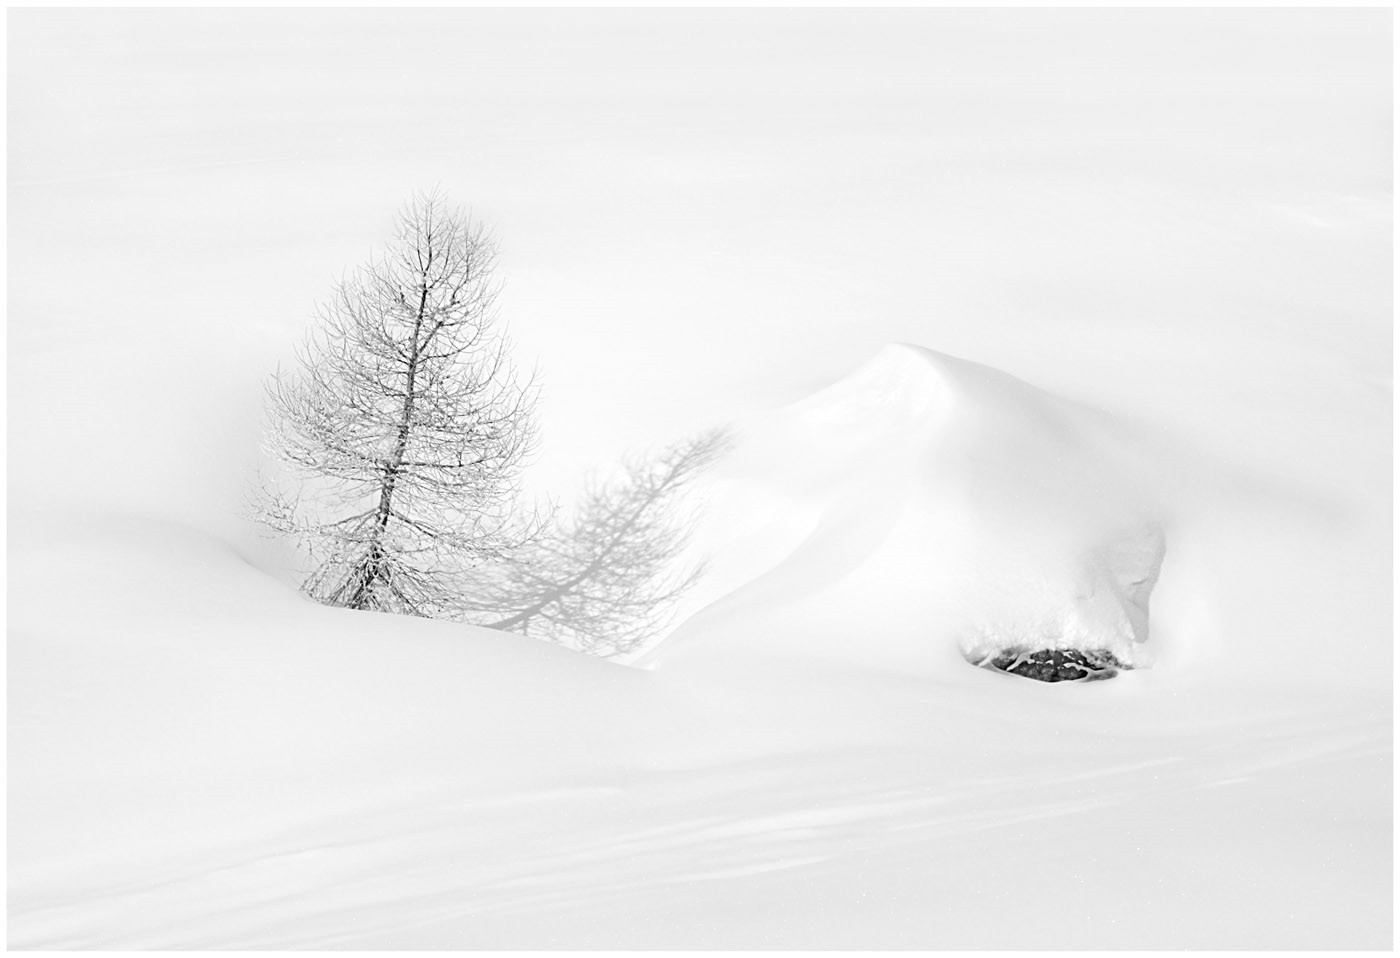 MONO - Tree and Snowdrift by Tom Dodd (17 marks)